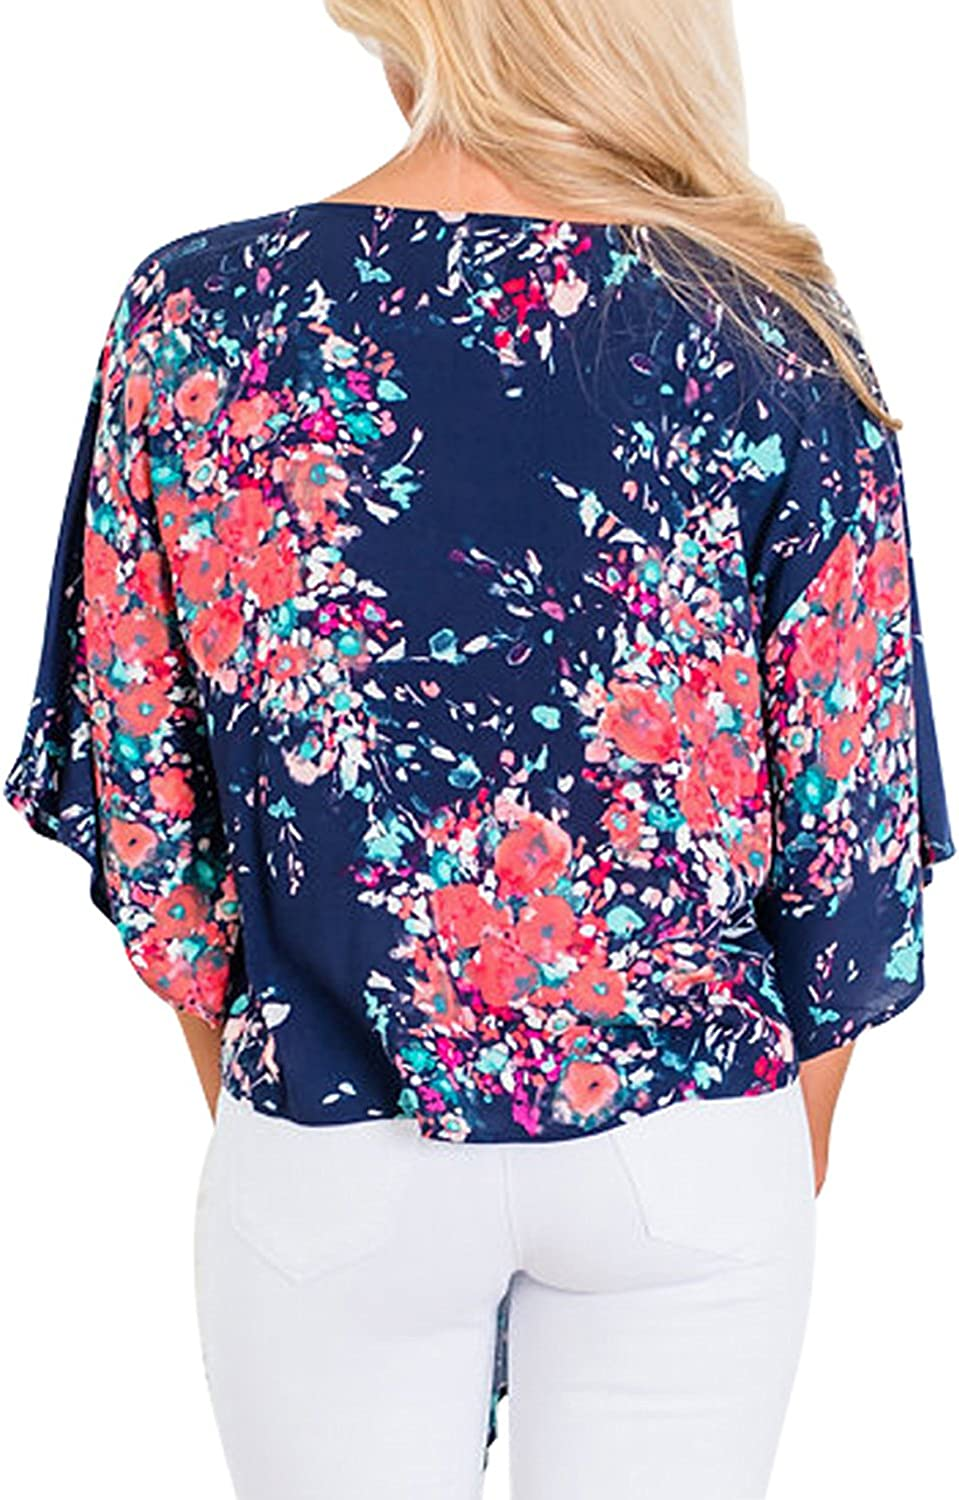 Elapsy Womens Floral V Neck Button Up Cami Tank Top Knot Front Sleeveless Blouse T Shirts Blue